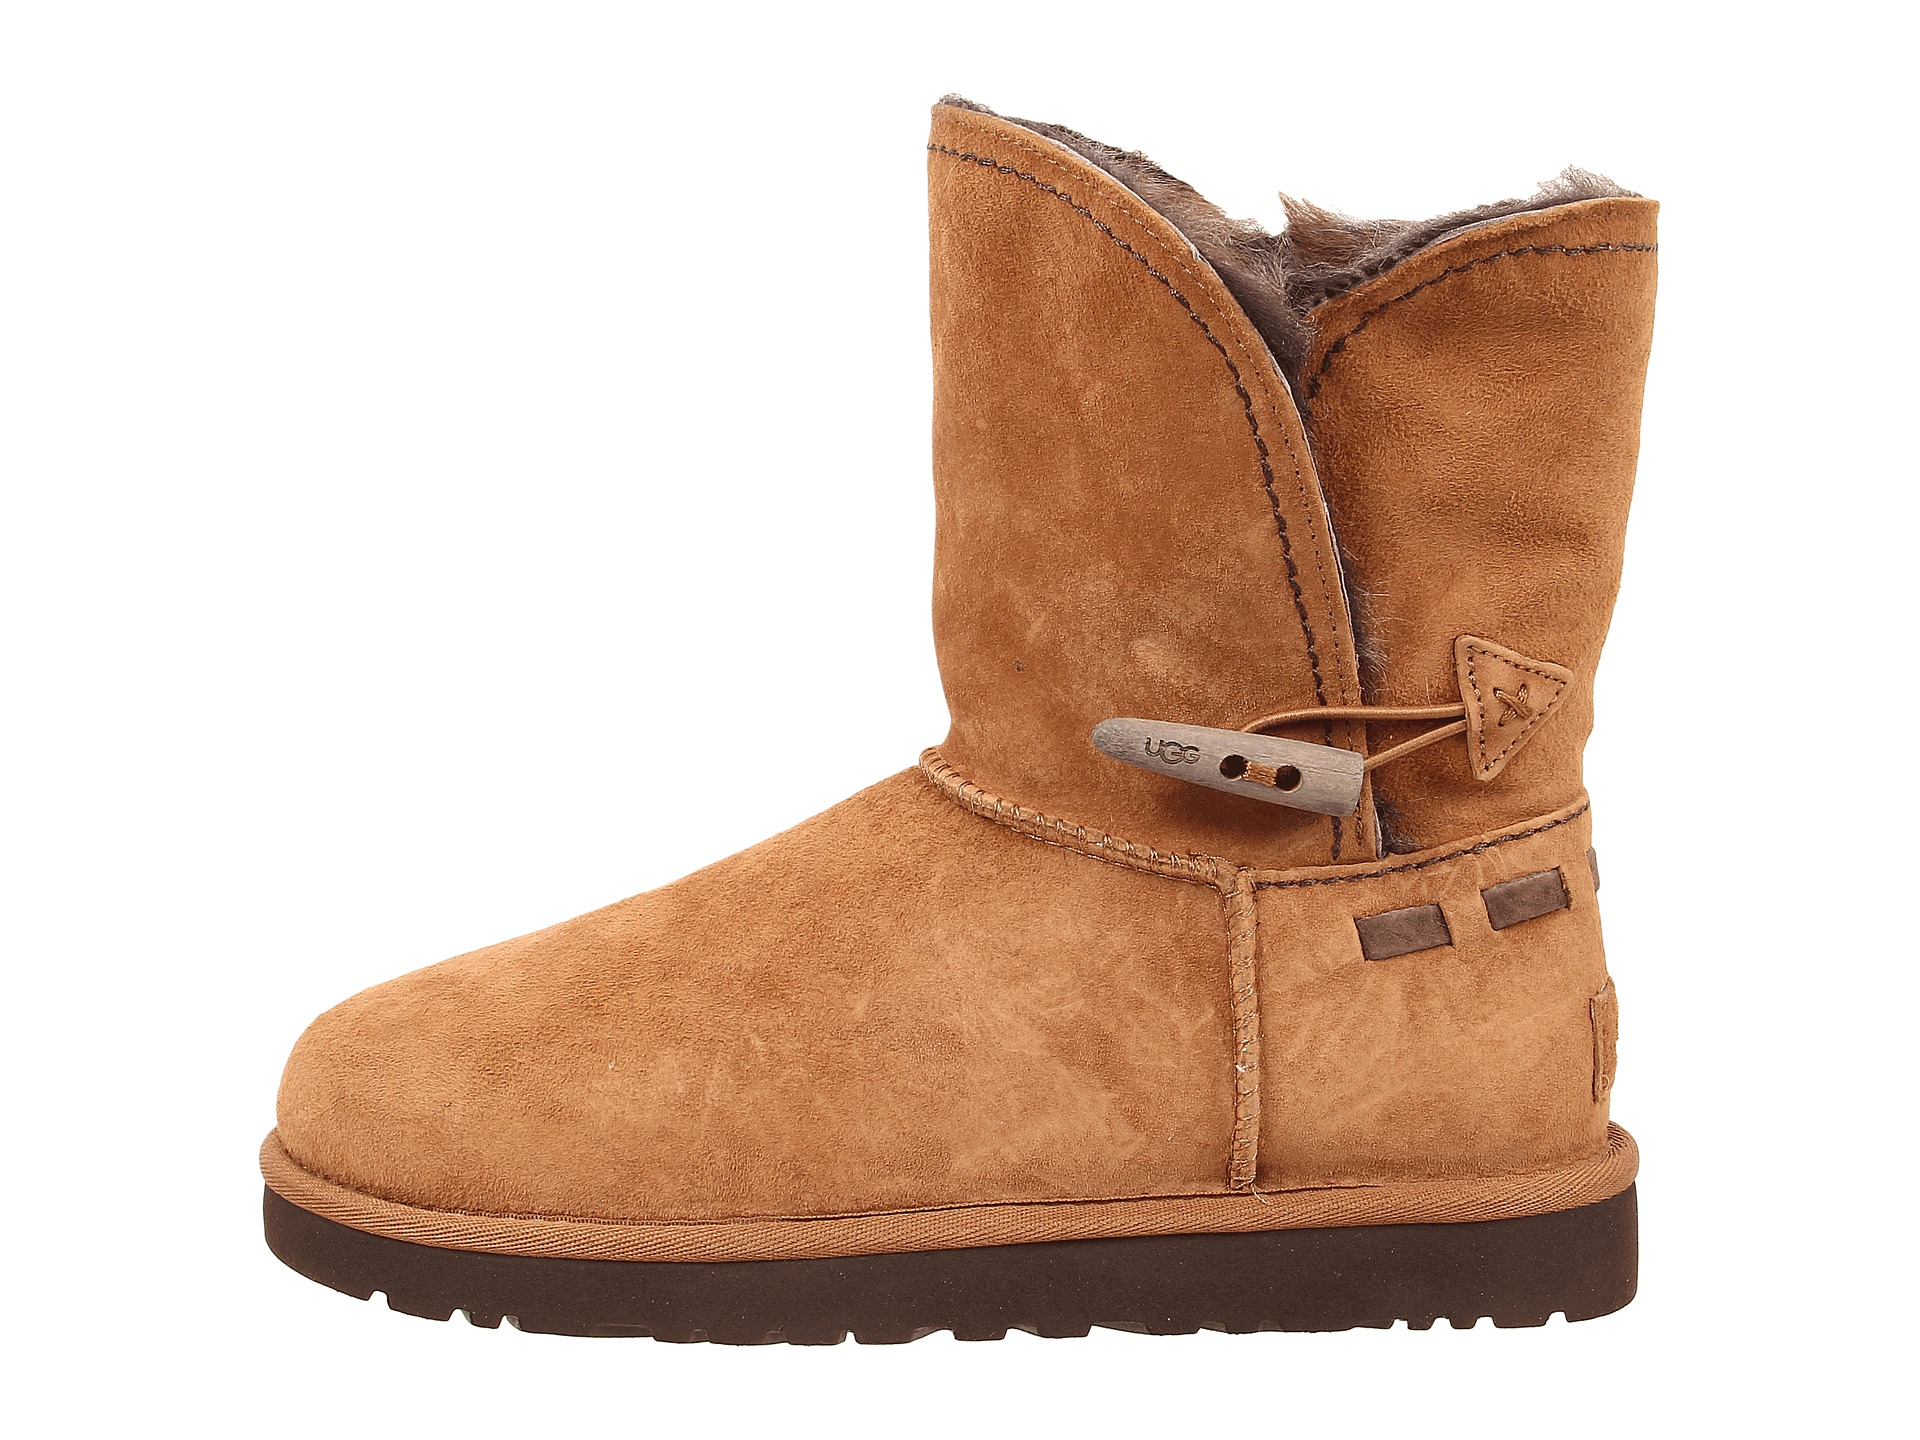 Boots online shopping